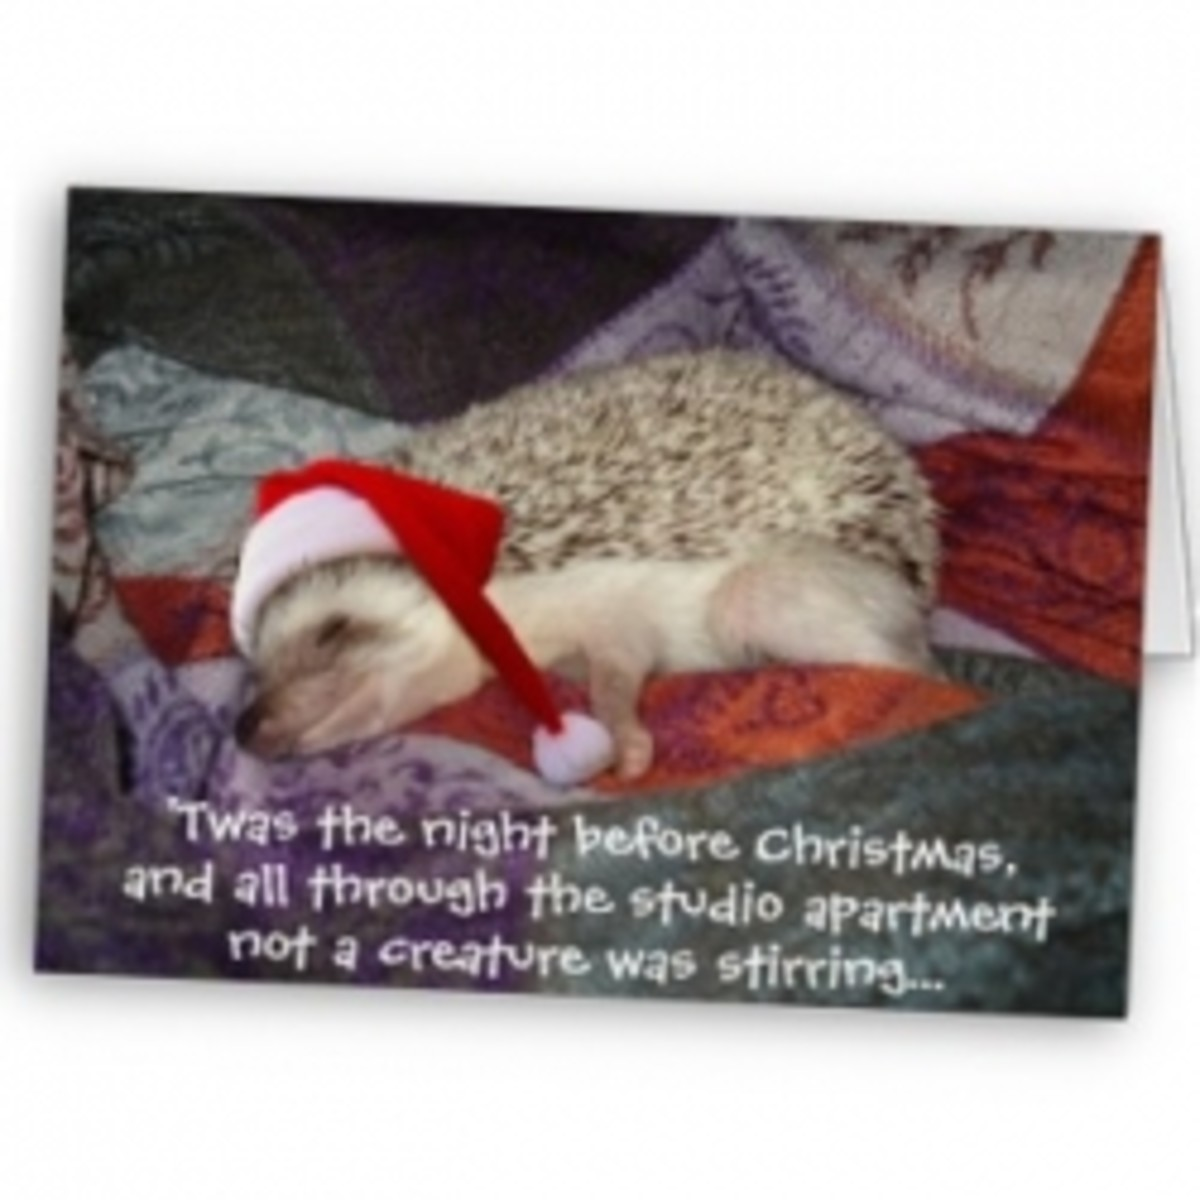 Funny Night Before Christmas Poems HubPages